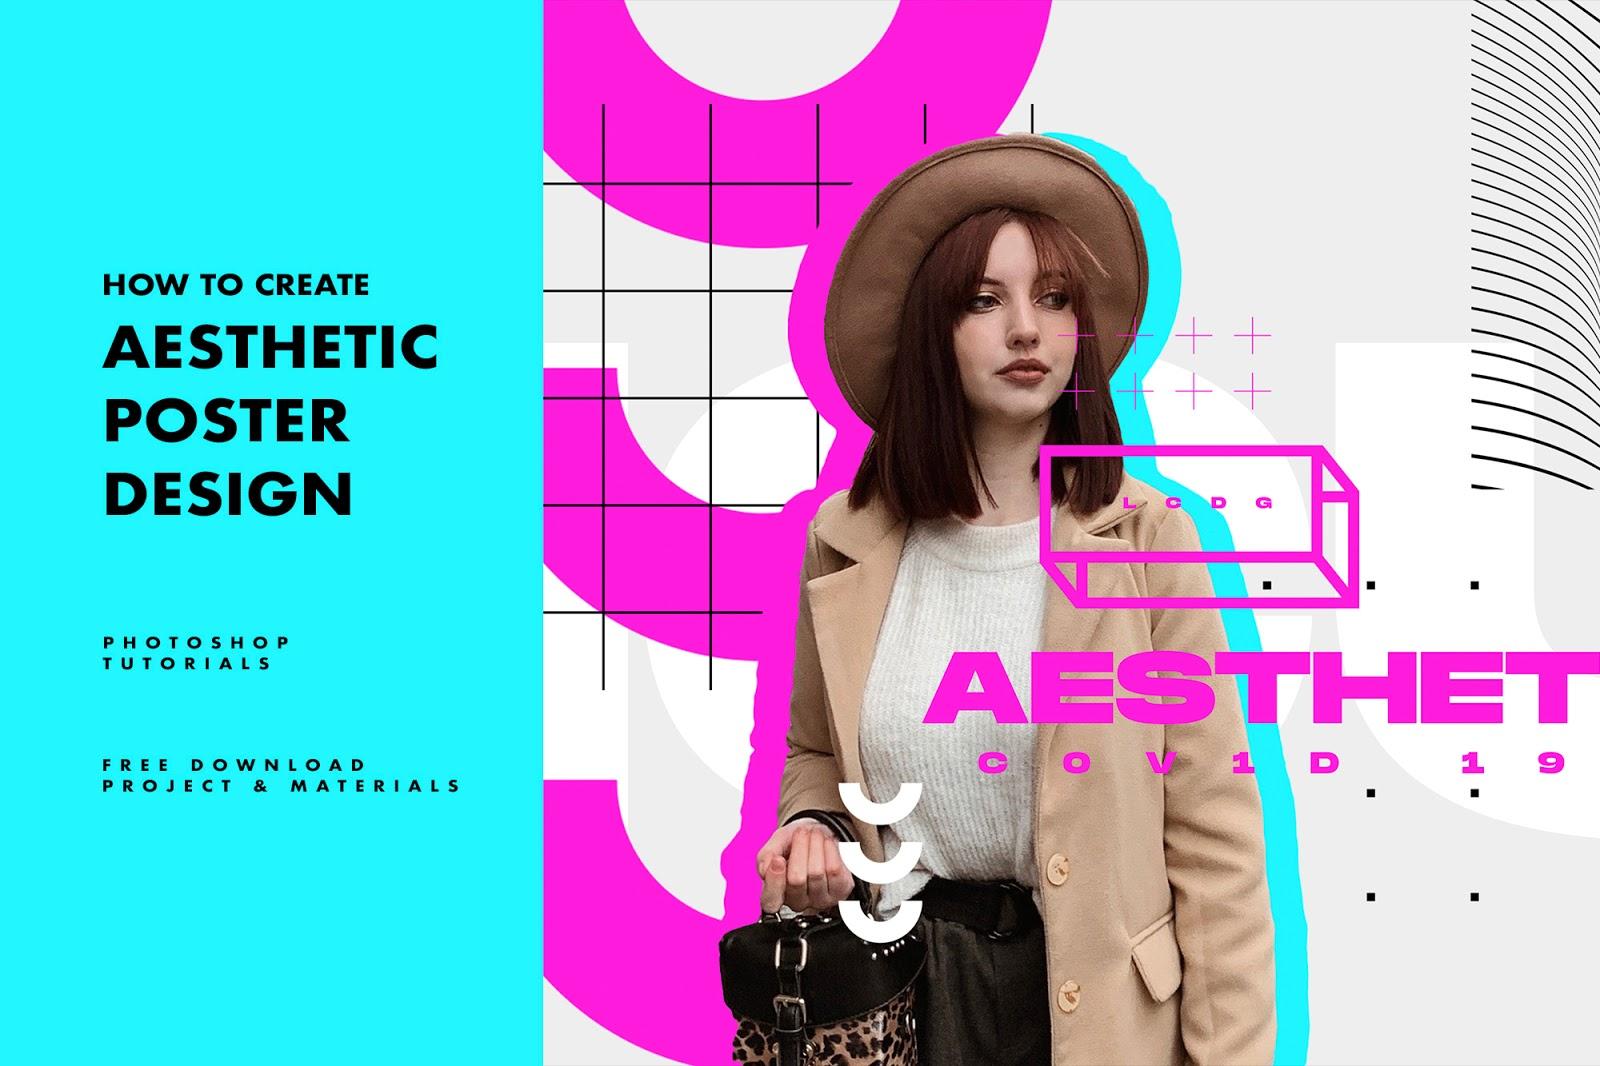 how to create aesthetic poster design